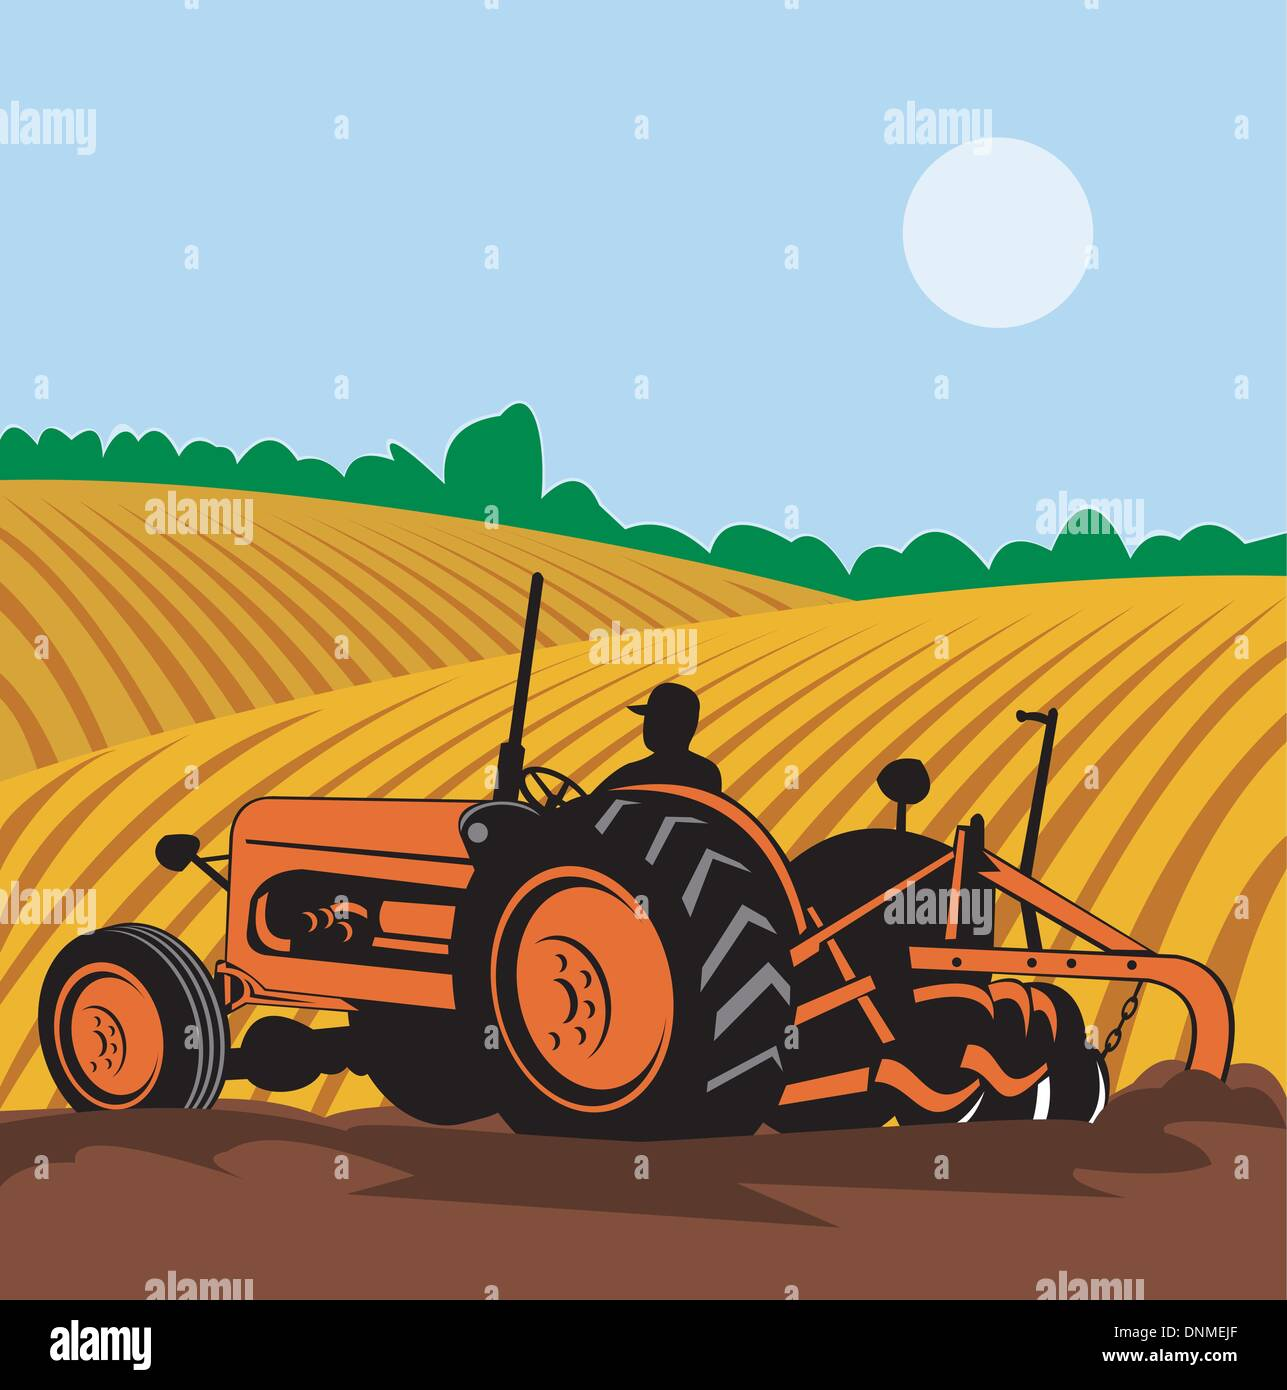 Illustration Of A Vintage Tractor With Farmer Driving In